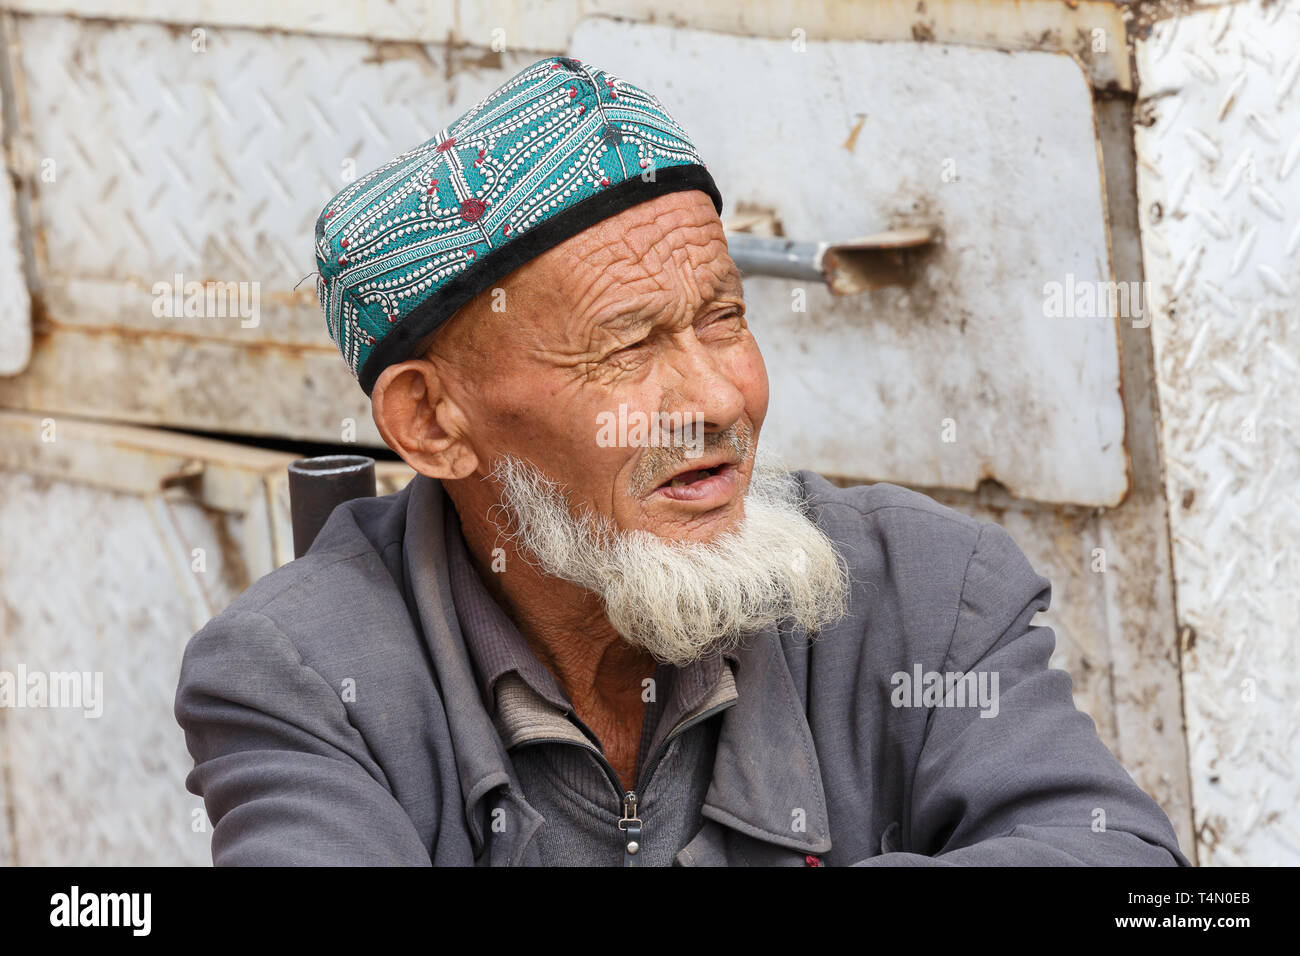 0f5581b3a8d A Bearded Old Man Wearing A Hat Stock Photos   A Bearded Old Man ...